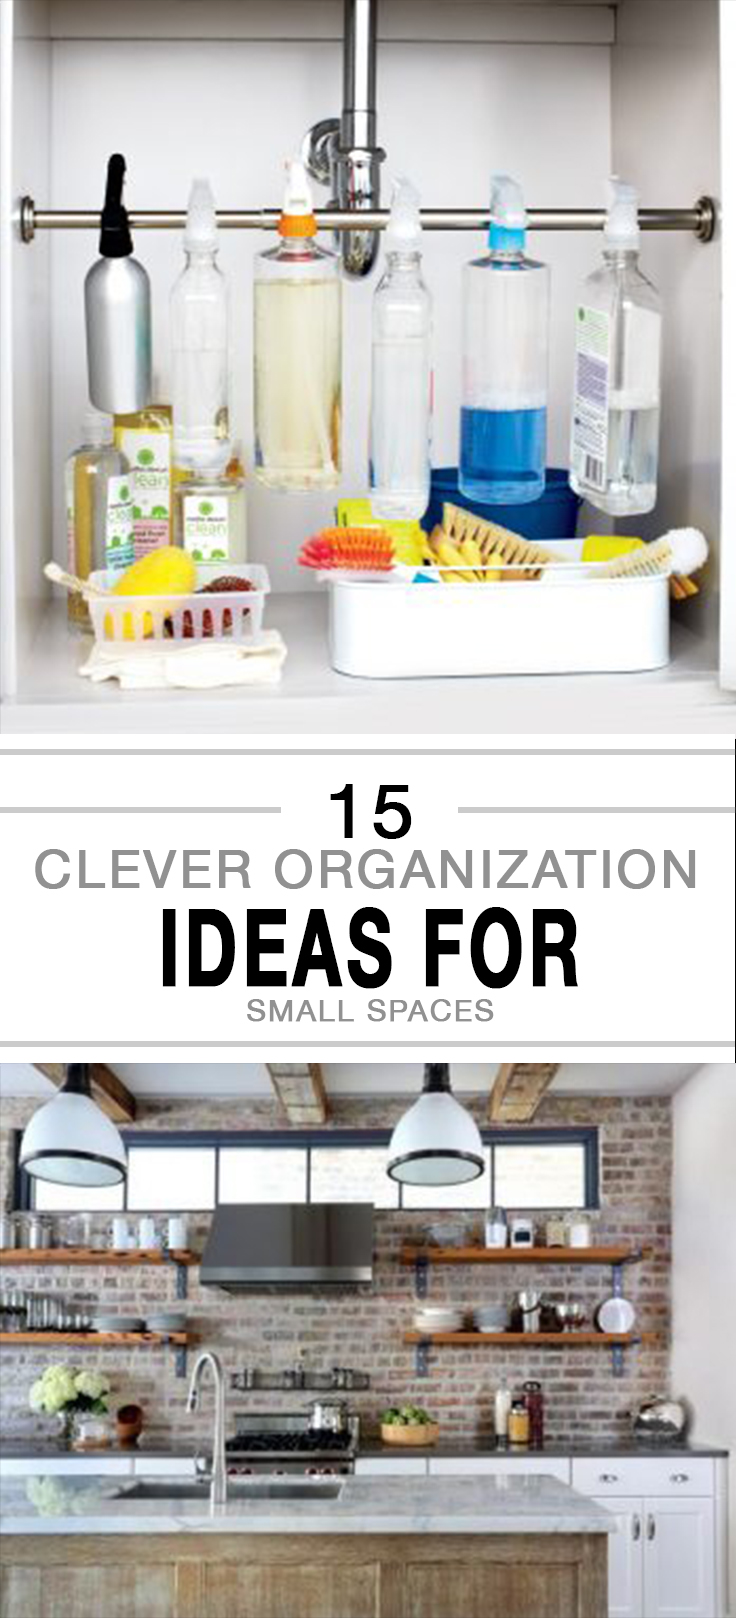 15 Clever Organization Ideas for Small Spaces